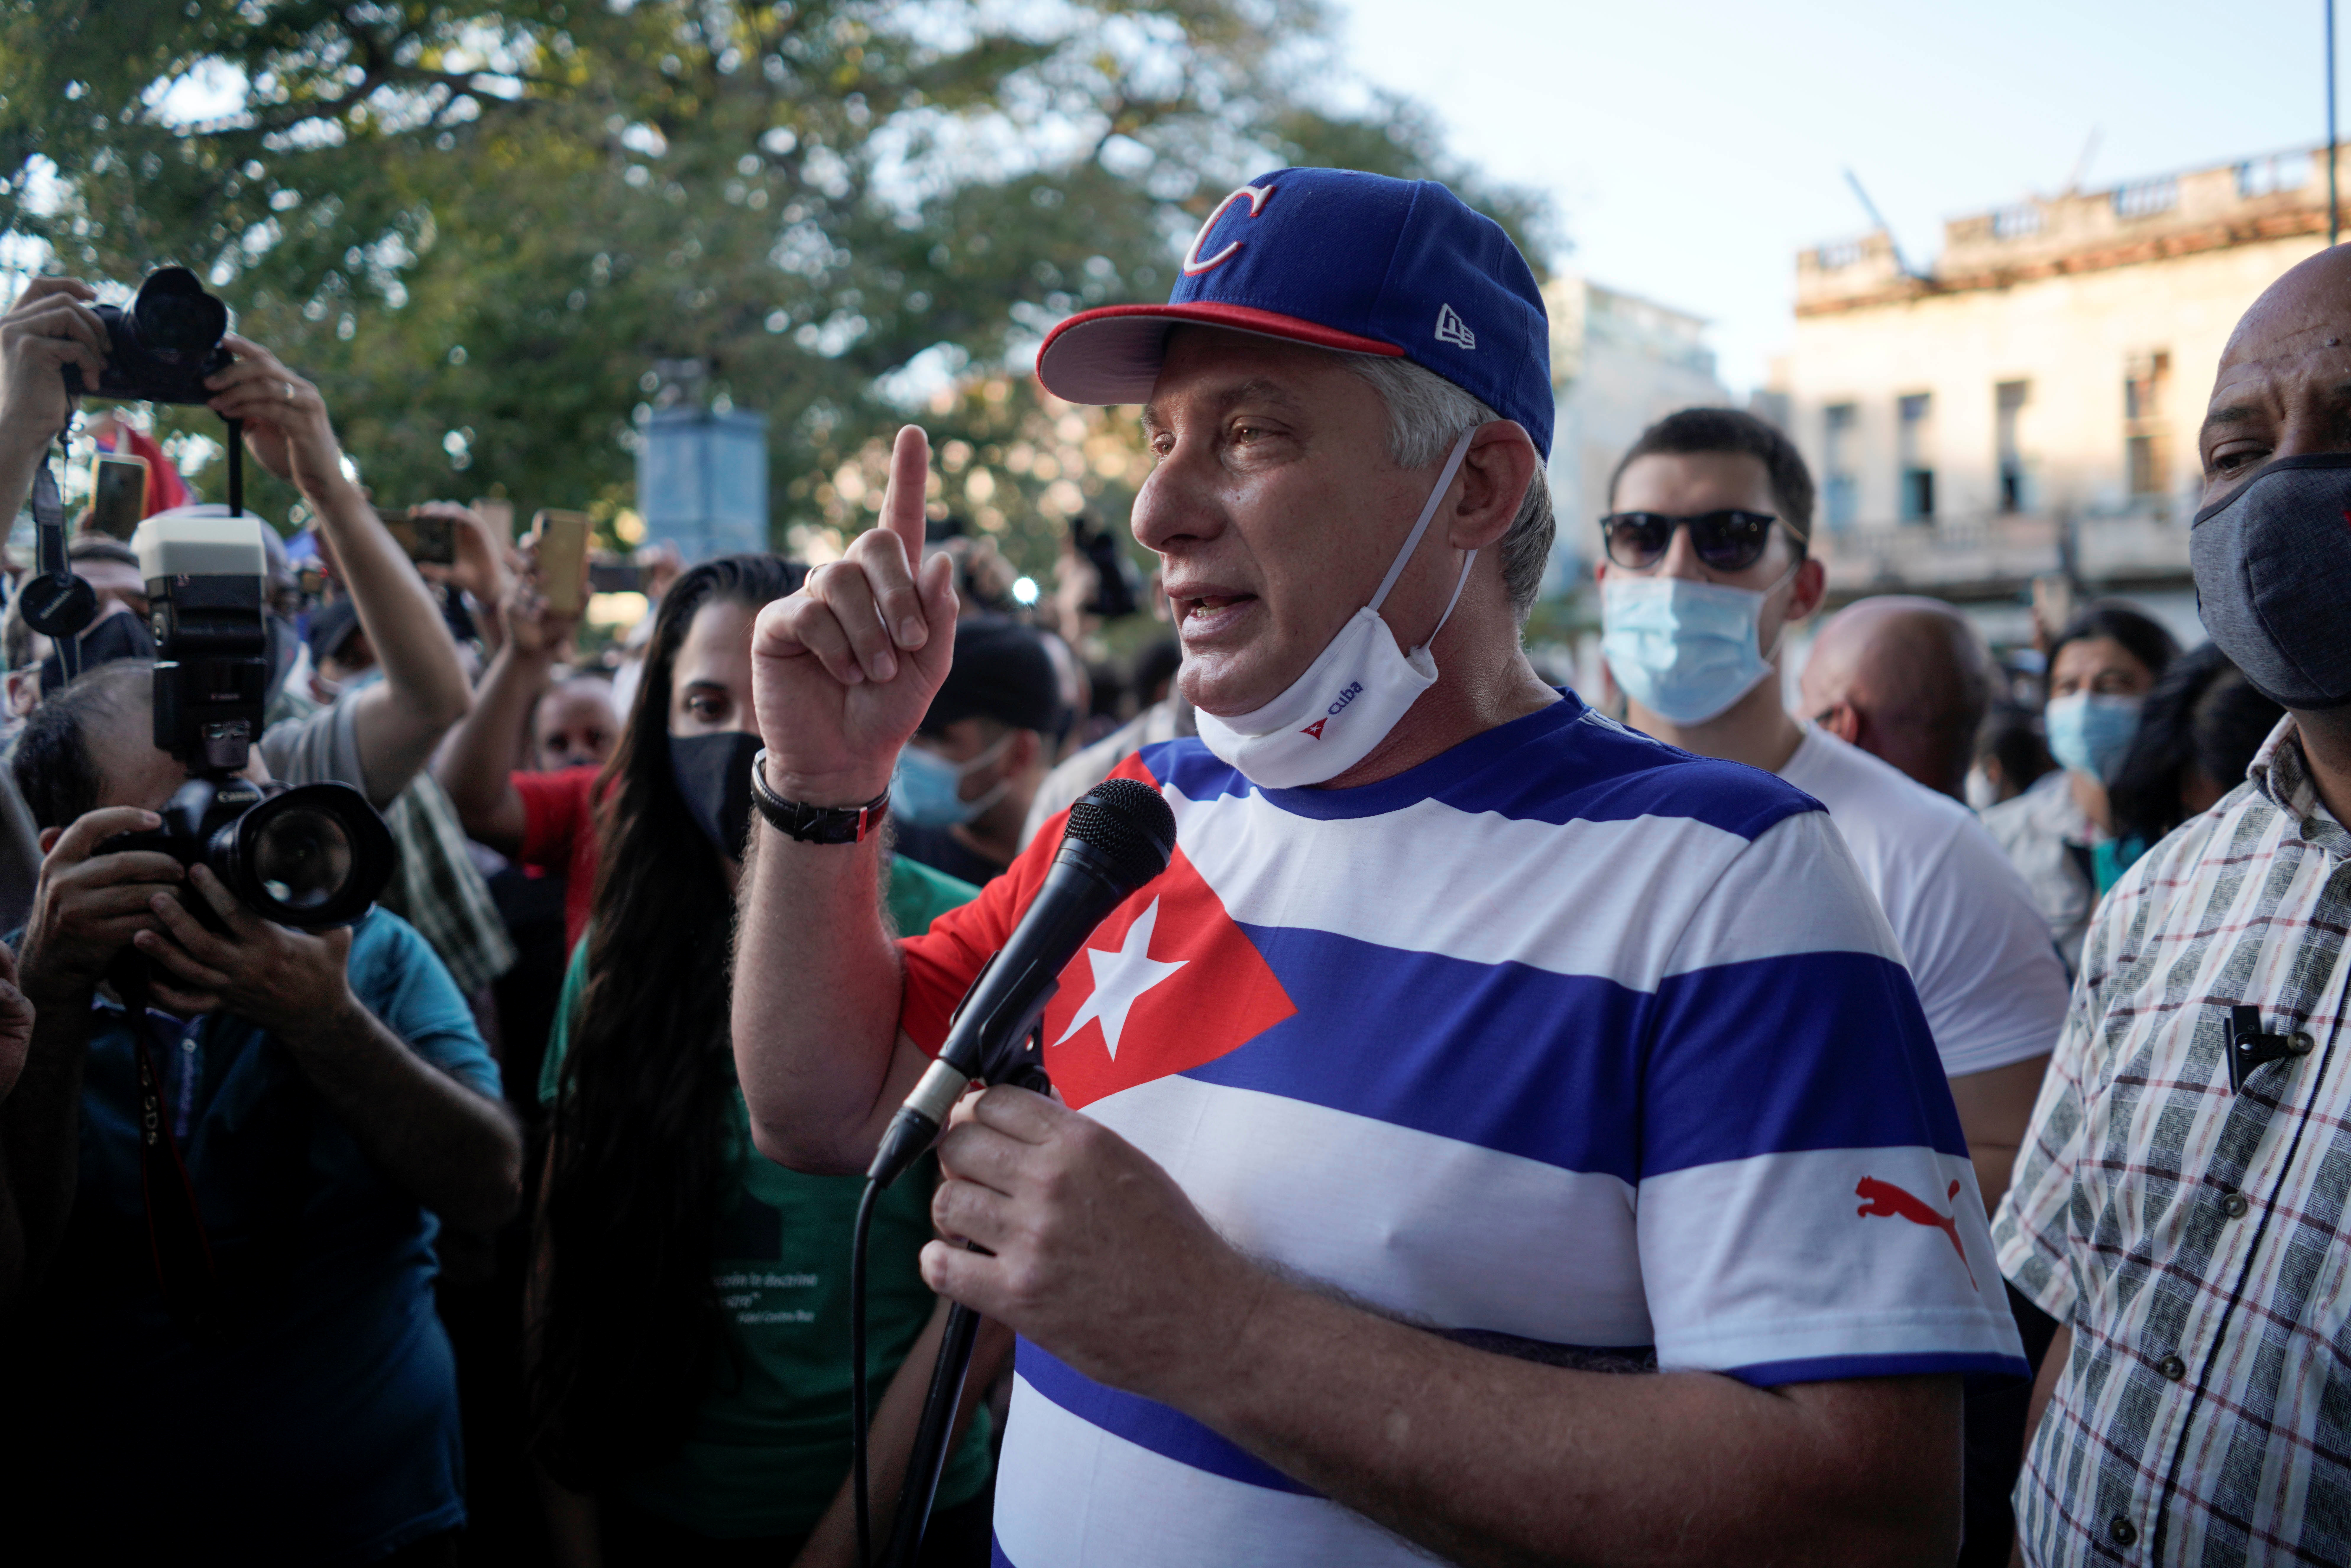 Cuba's President Miguel Diaz Canel speaks during a pro-government rally in Havana, Cuba, November 29, 2020. REUTERS/Alexandre Meneghini